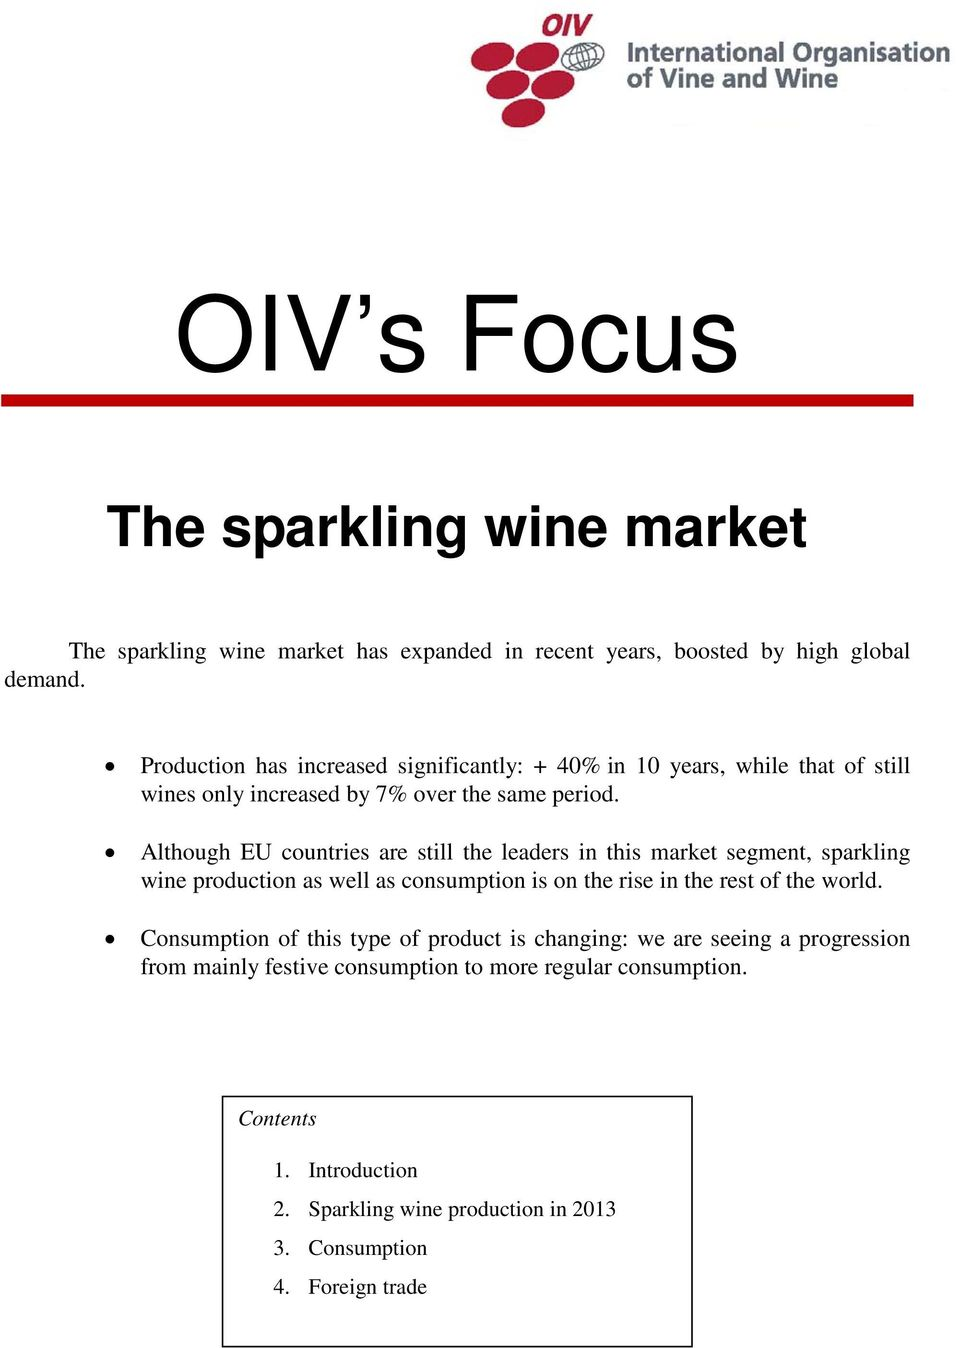 Although EU countries are still the leaders in this market segment, sparkling wine production as well as consumption is on the rise in the rest of the world.